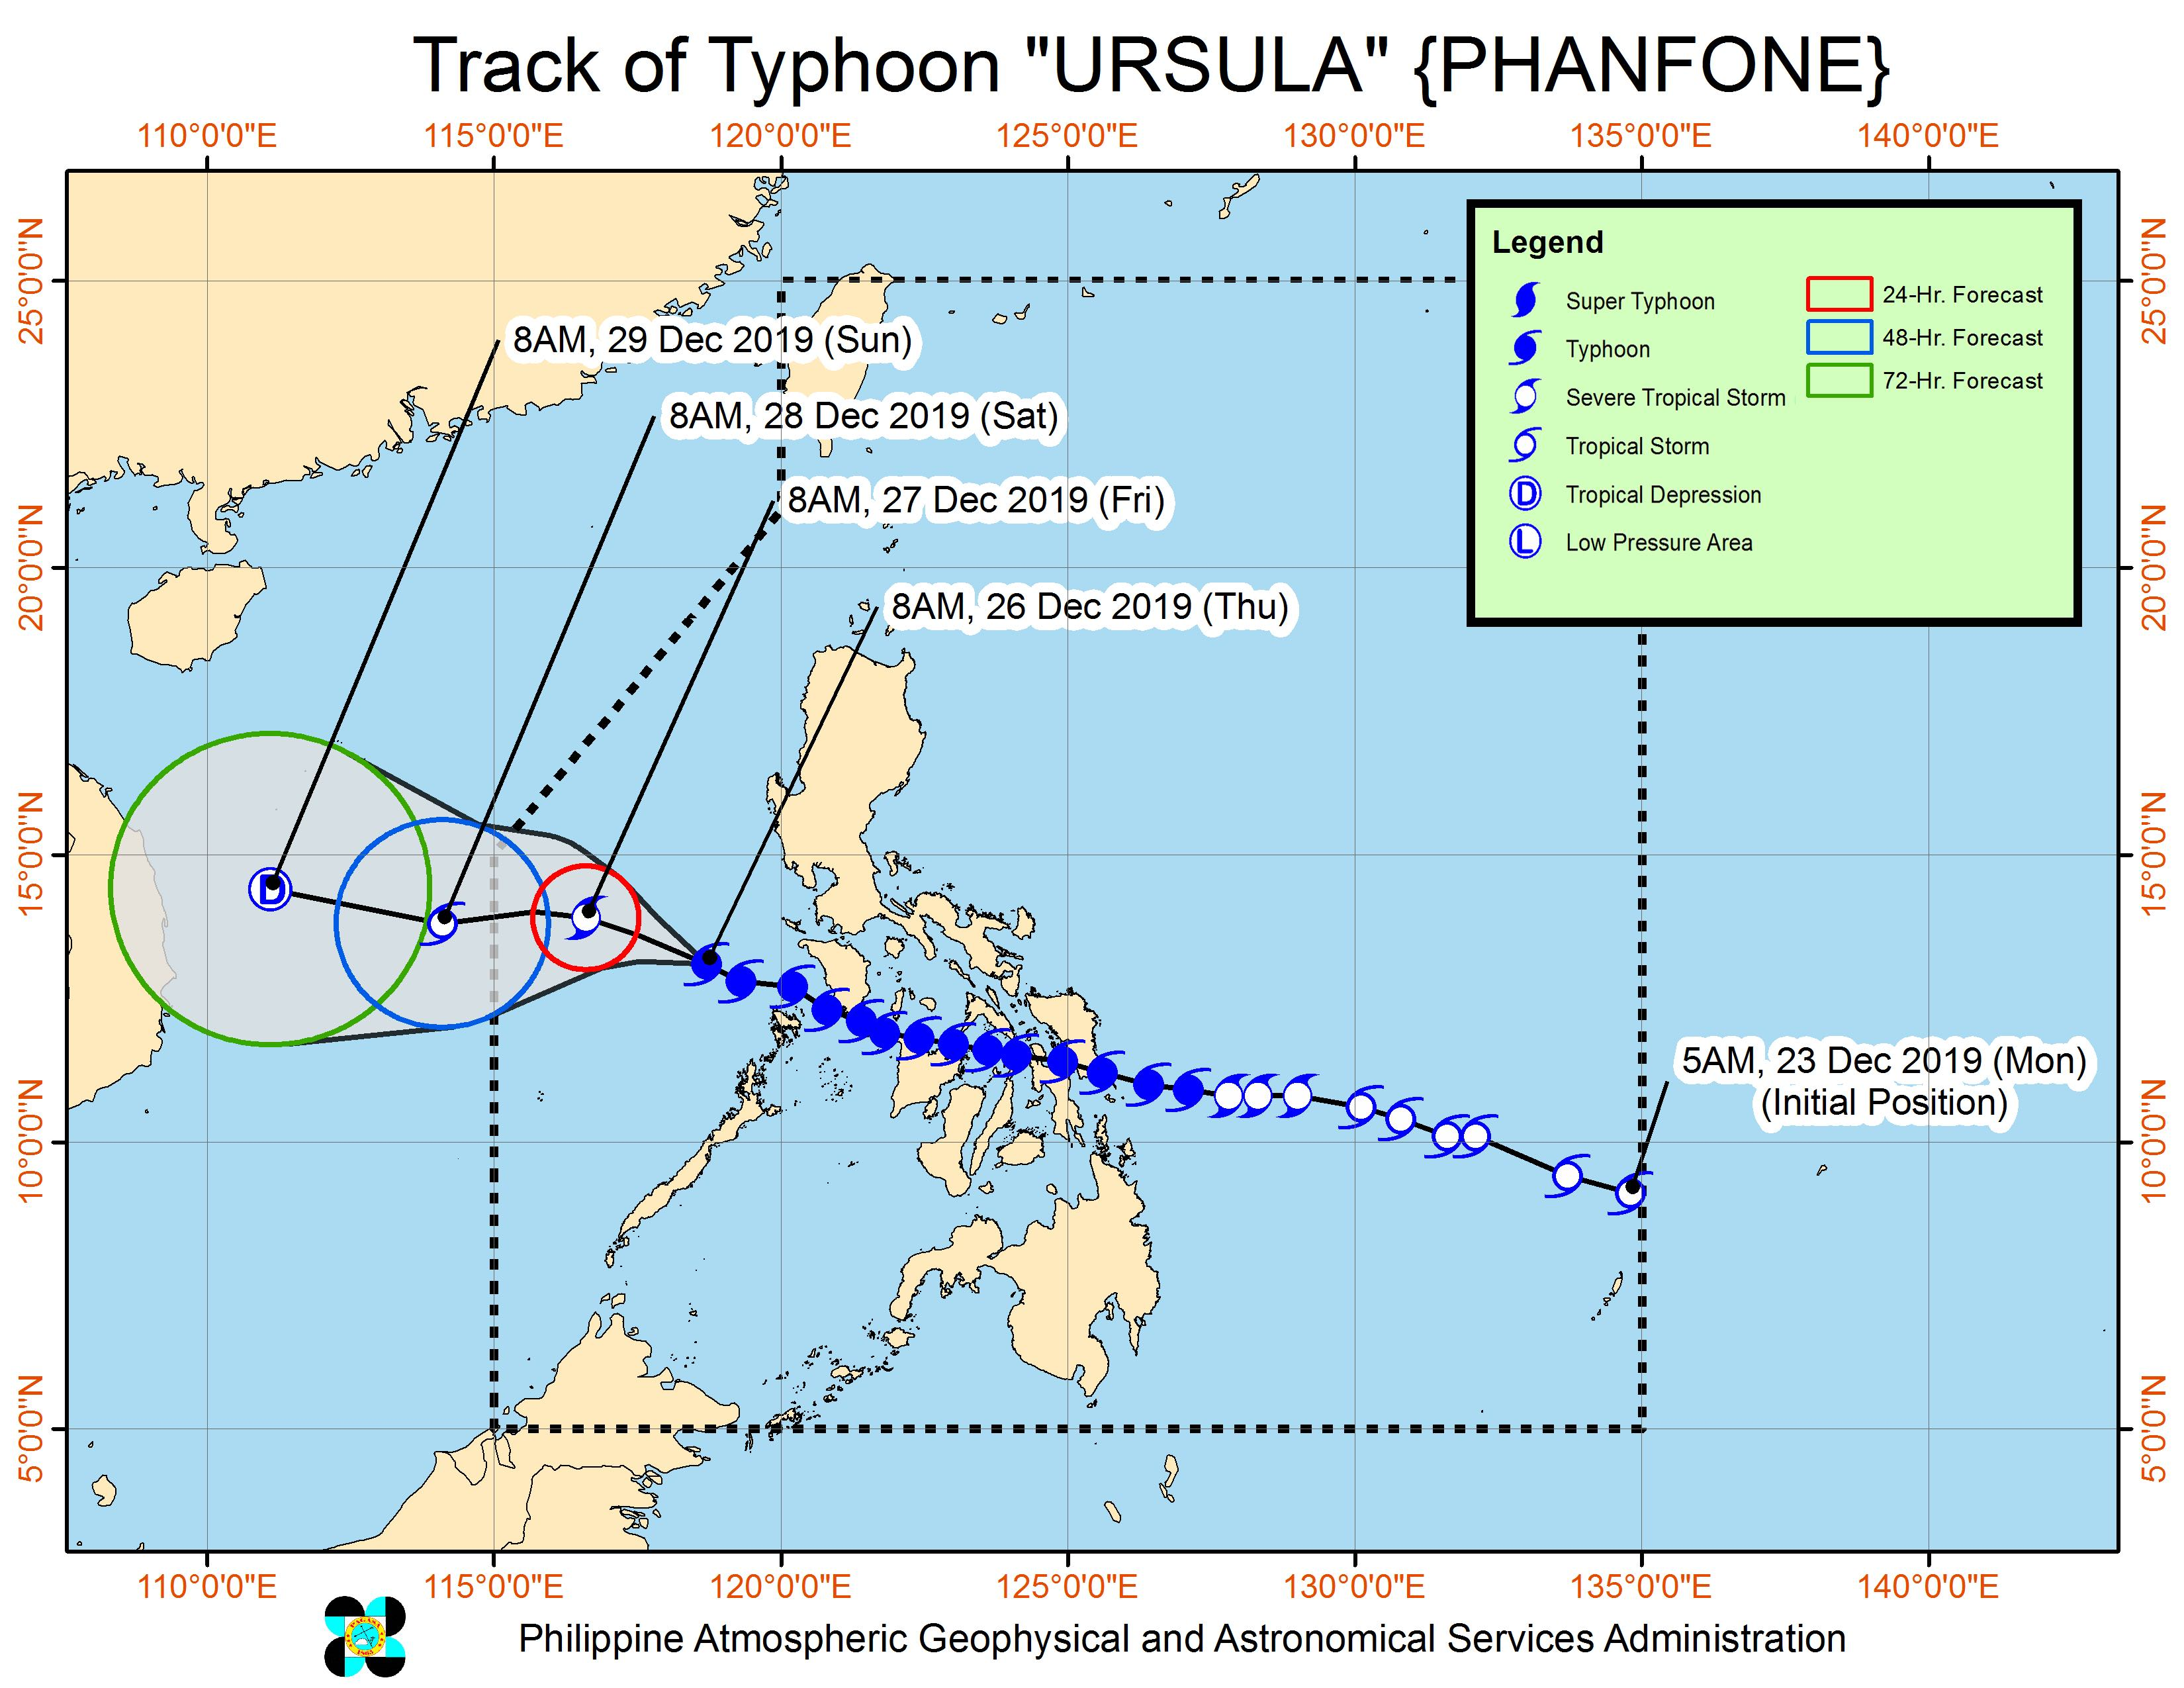 Forecast track of Typhoon Ursula (Phanfone) as of December 26, 2019, 11 am. Image from PAGASA